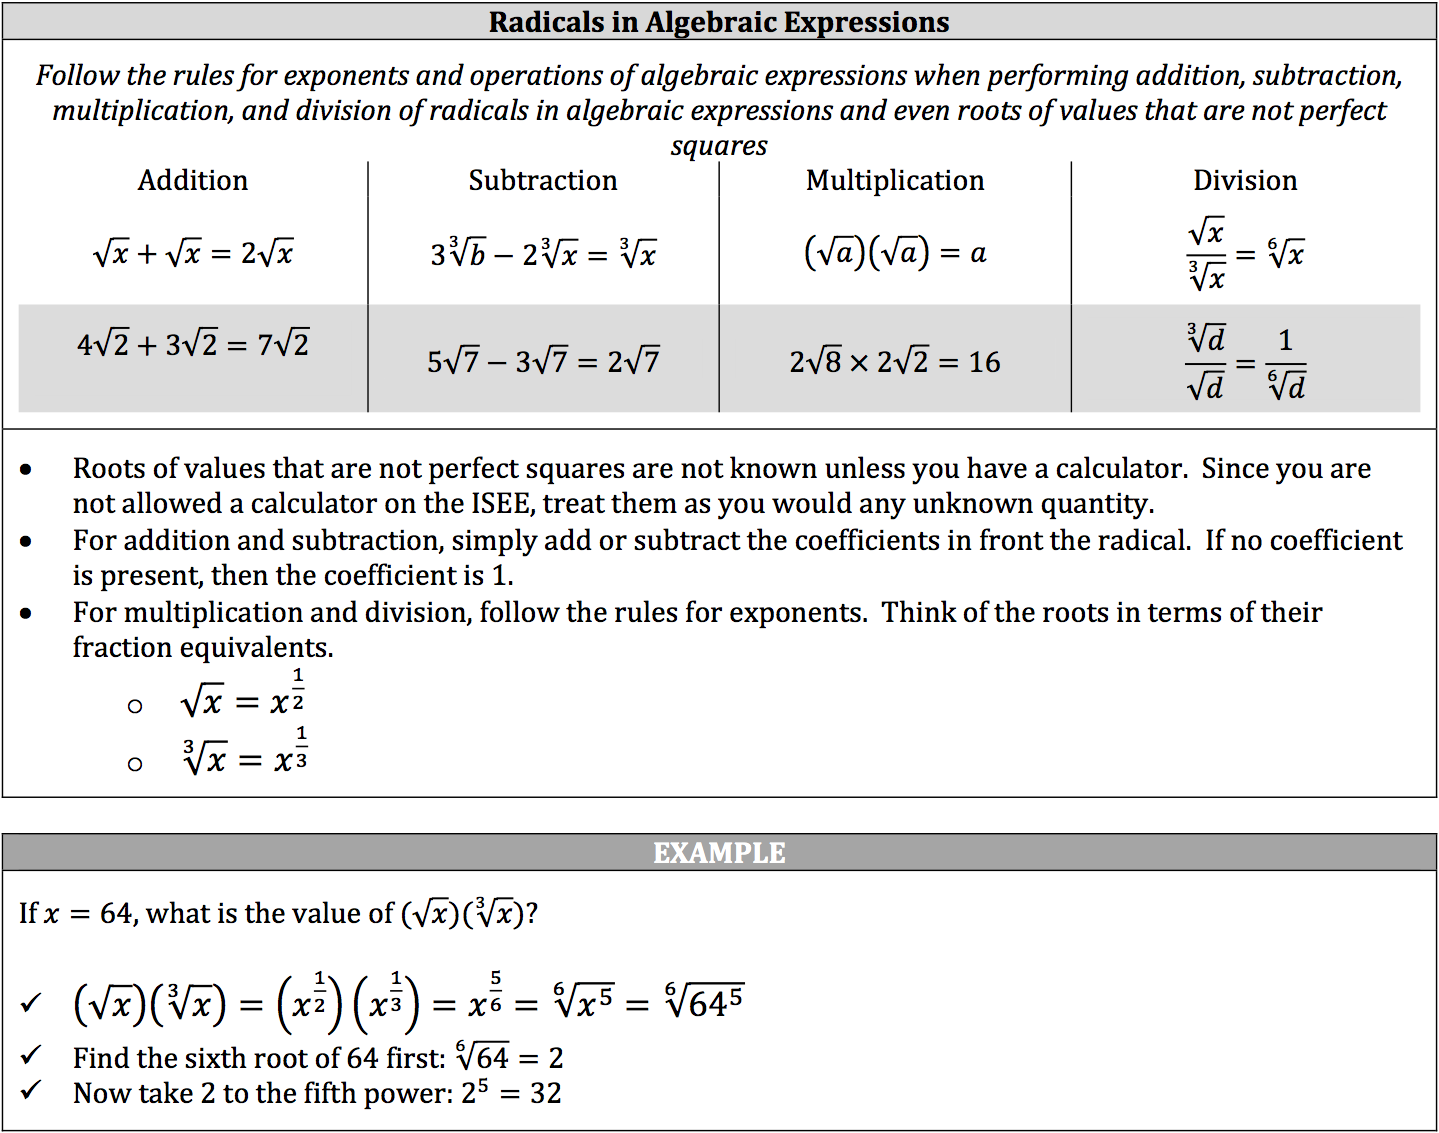 worksheet Algebraic Expressions isee math review operations on algebraic expressions piqosity radicals in expressions